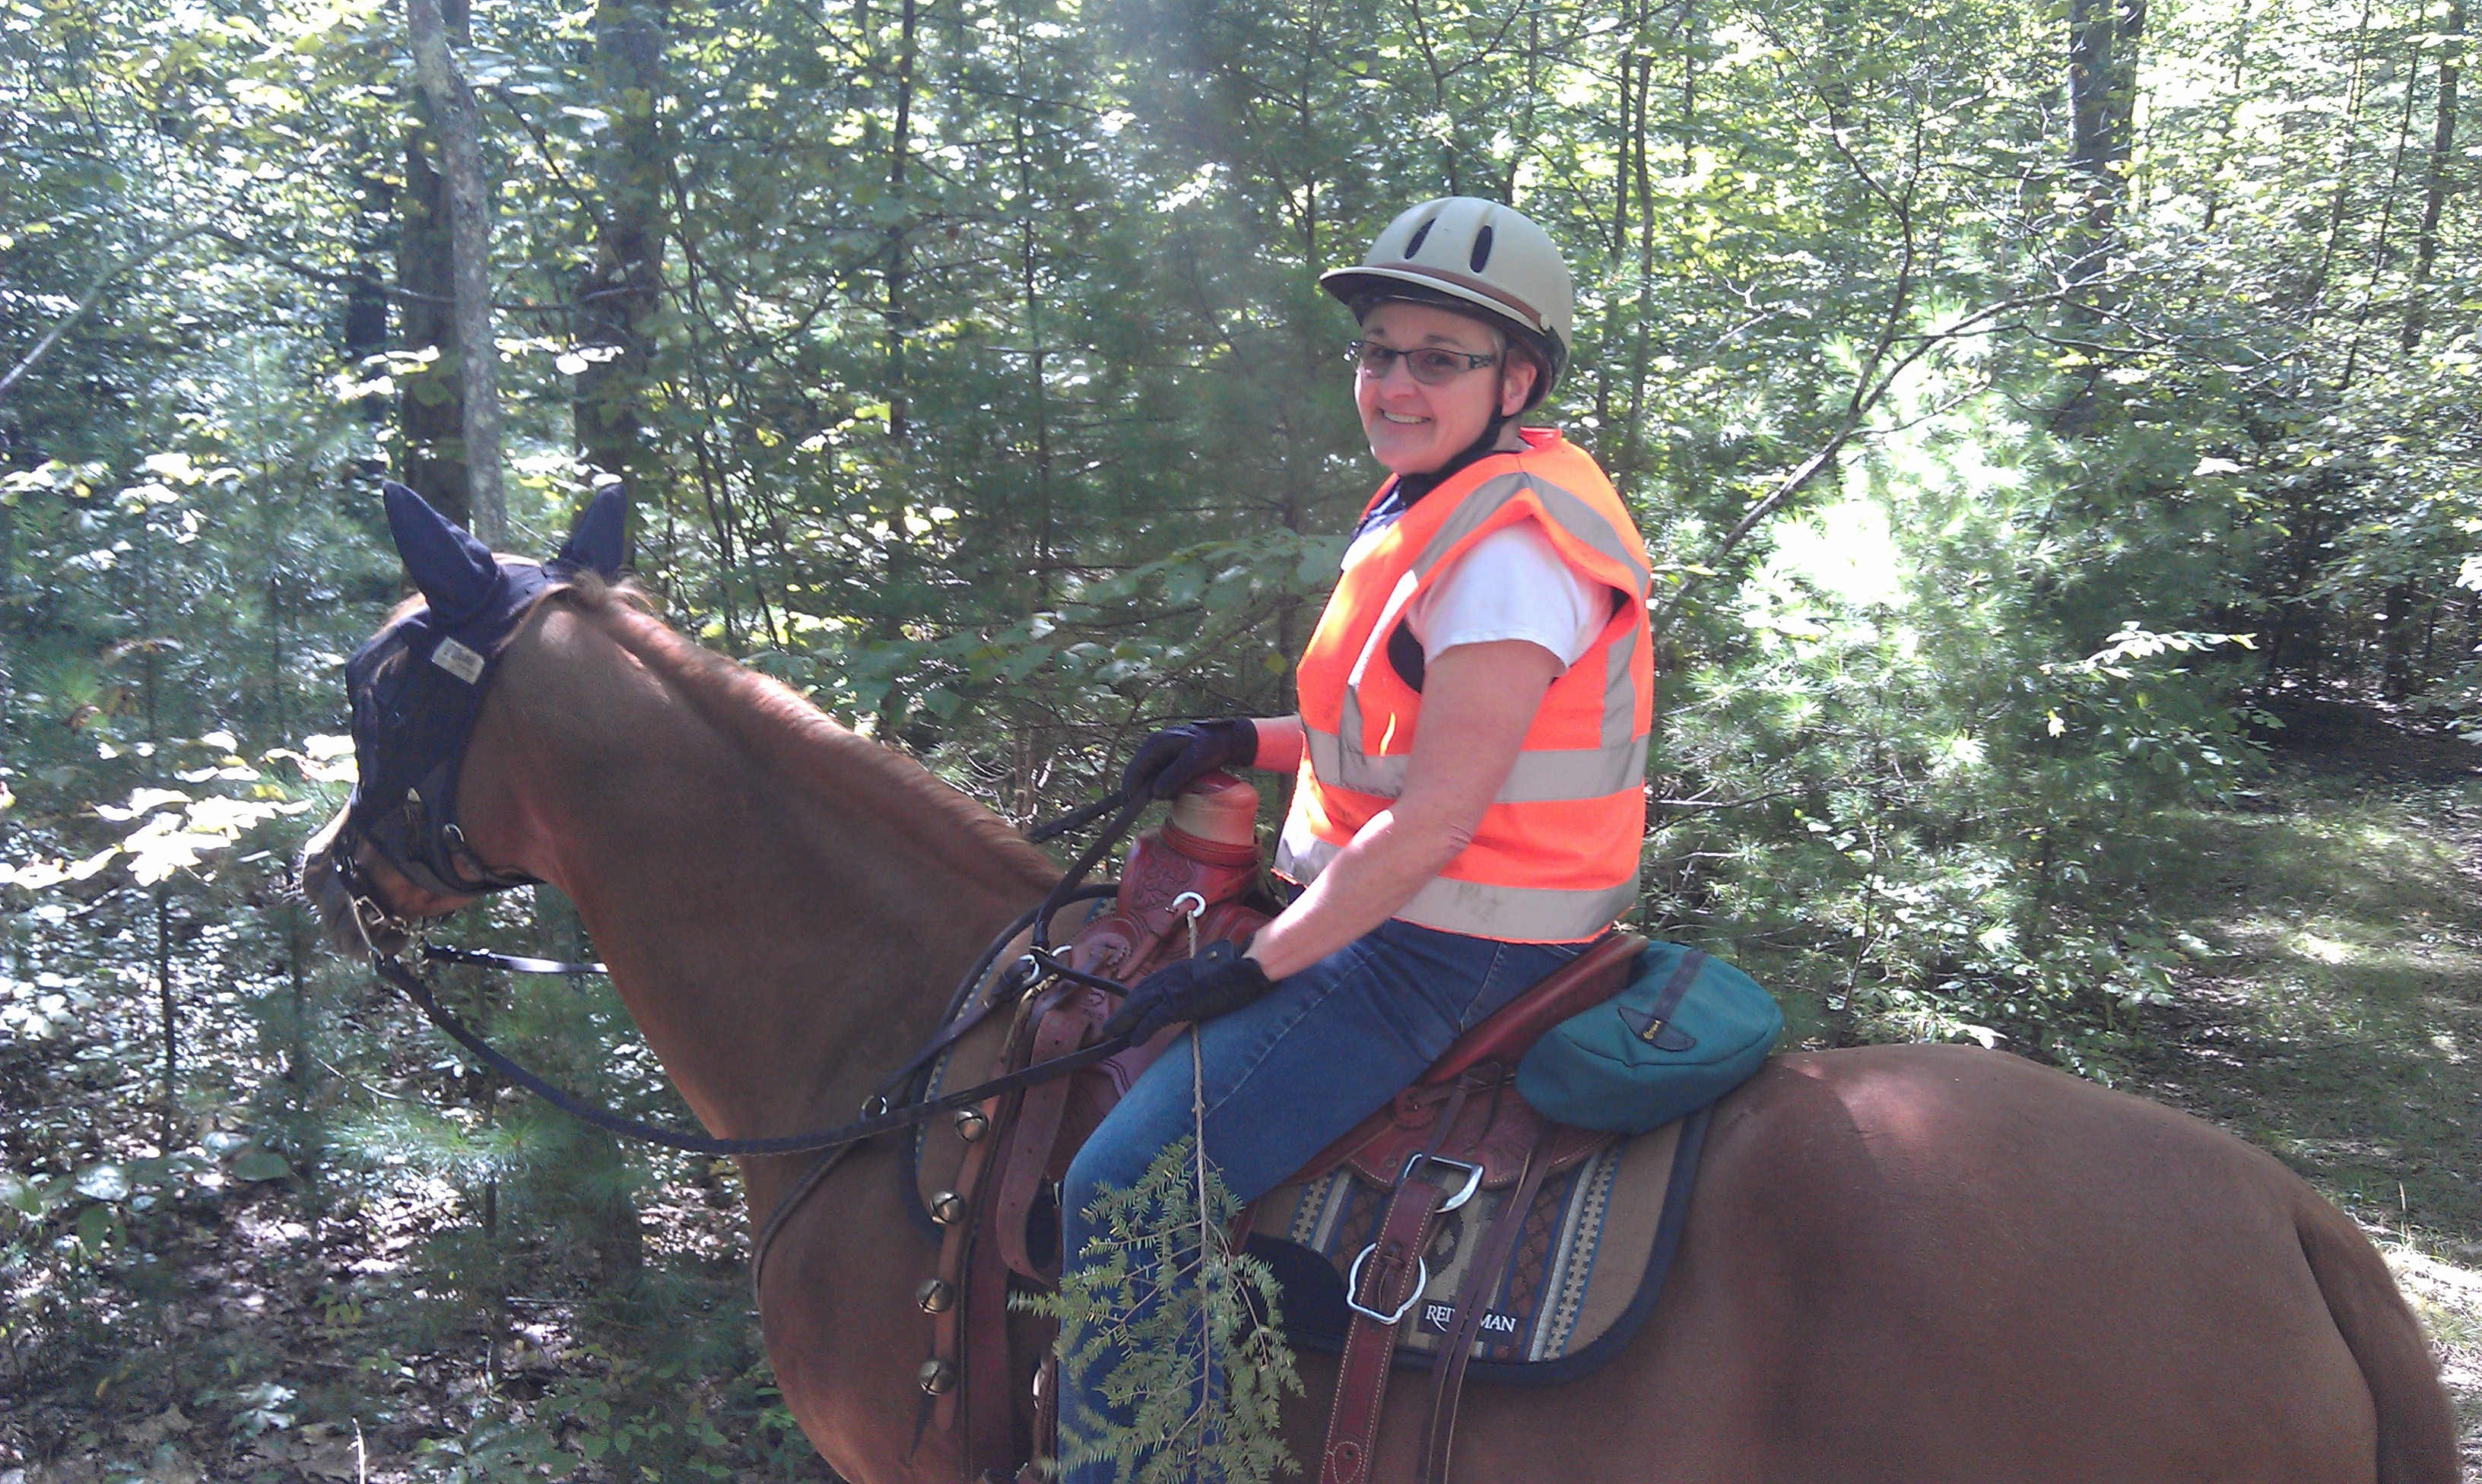 Enjoying a trail ride during hunting season